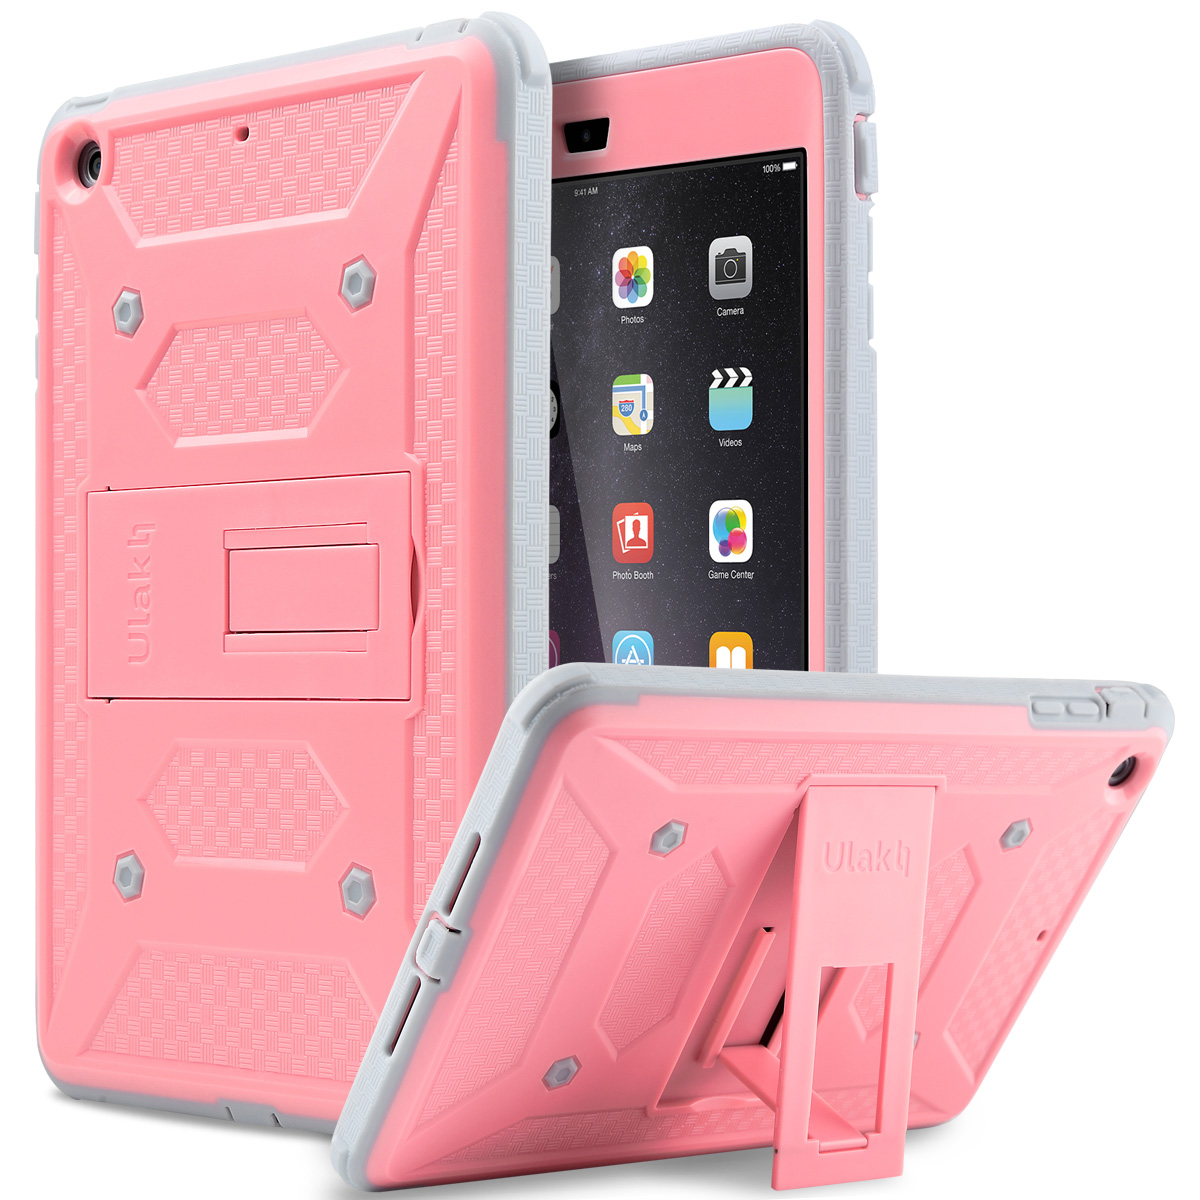 ULAK [KNOX ARMOR] Hybrid Impact Resistant Cover with Built-in Screen Protector & Kickstand Case for Apple iPad Mini 1/2/3(China (Mainland))